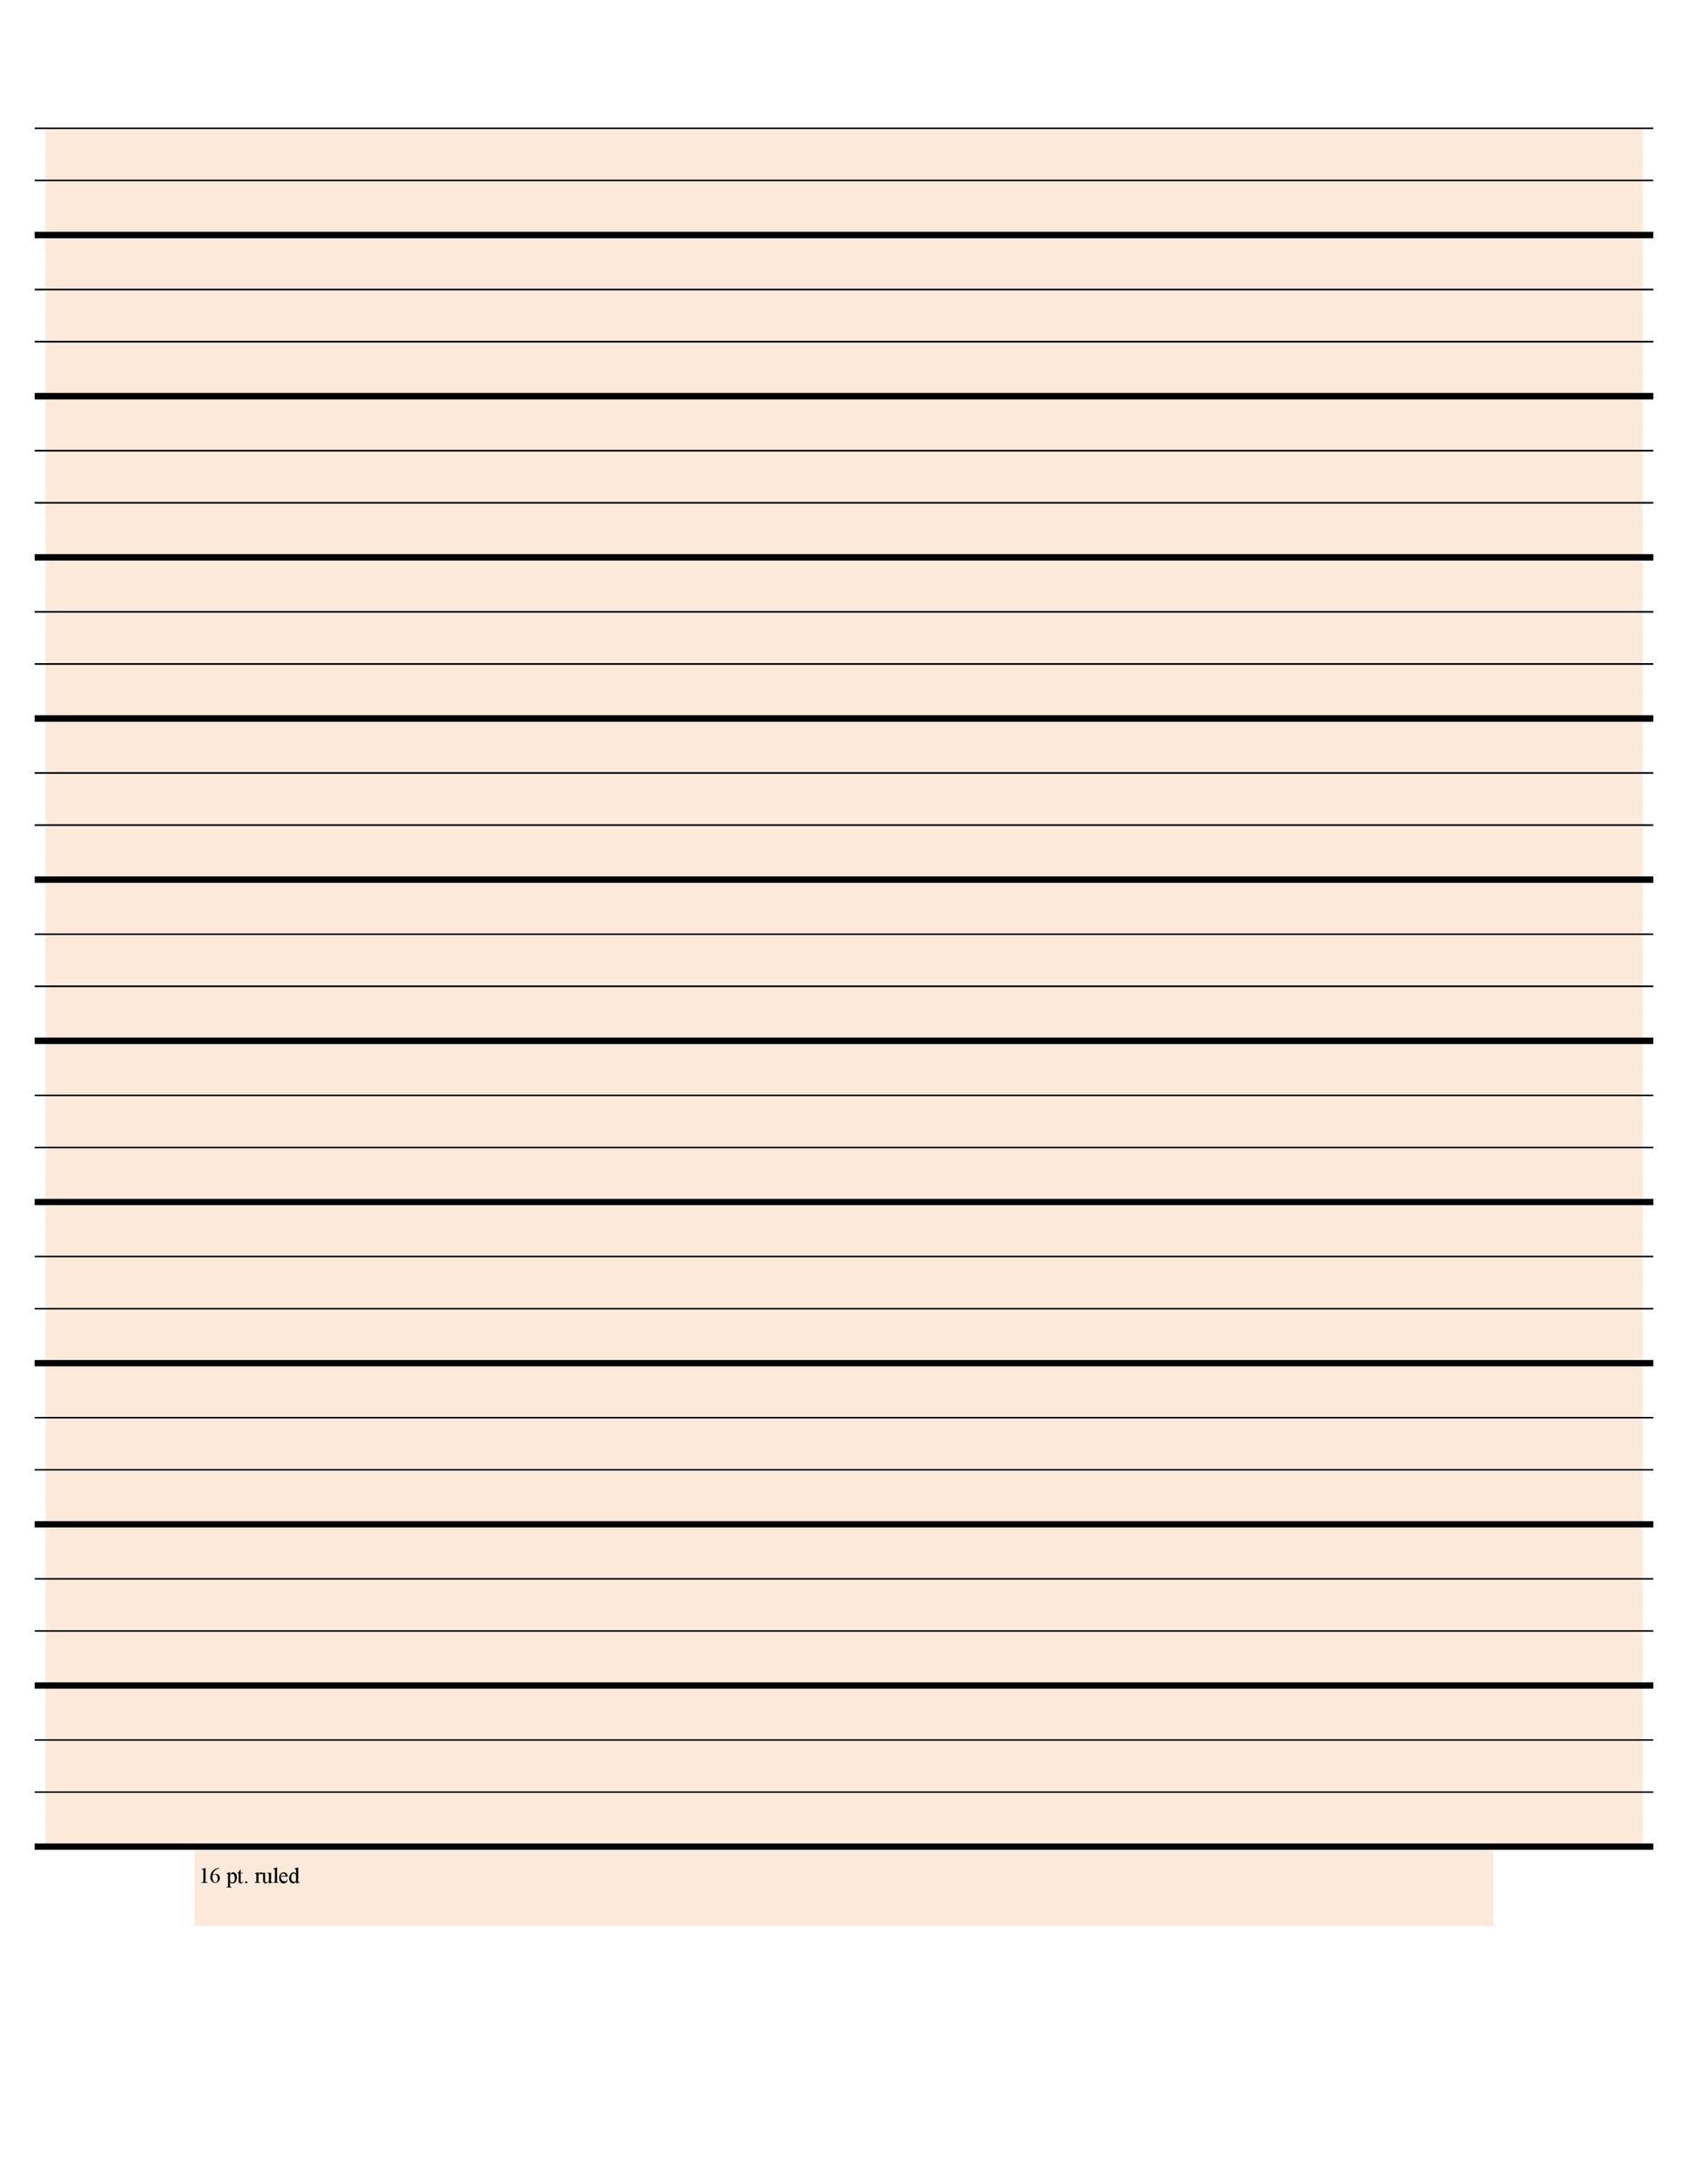 Free lined paper template 09